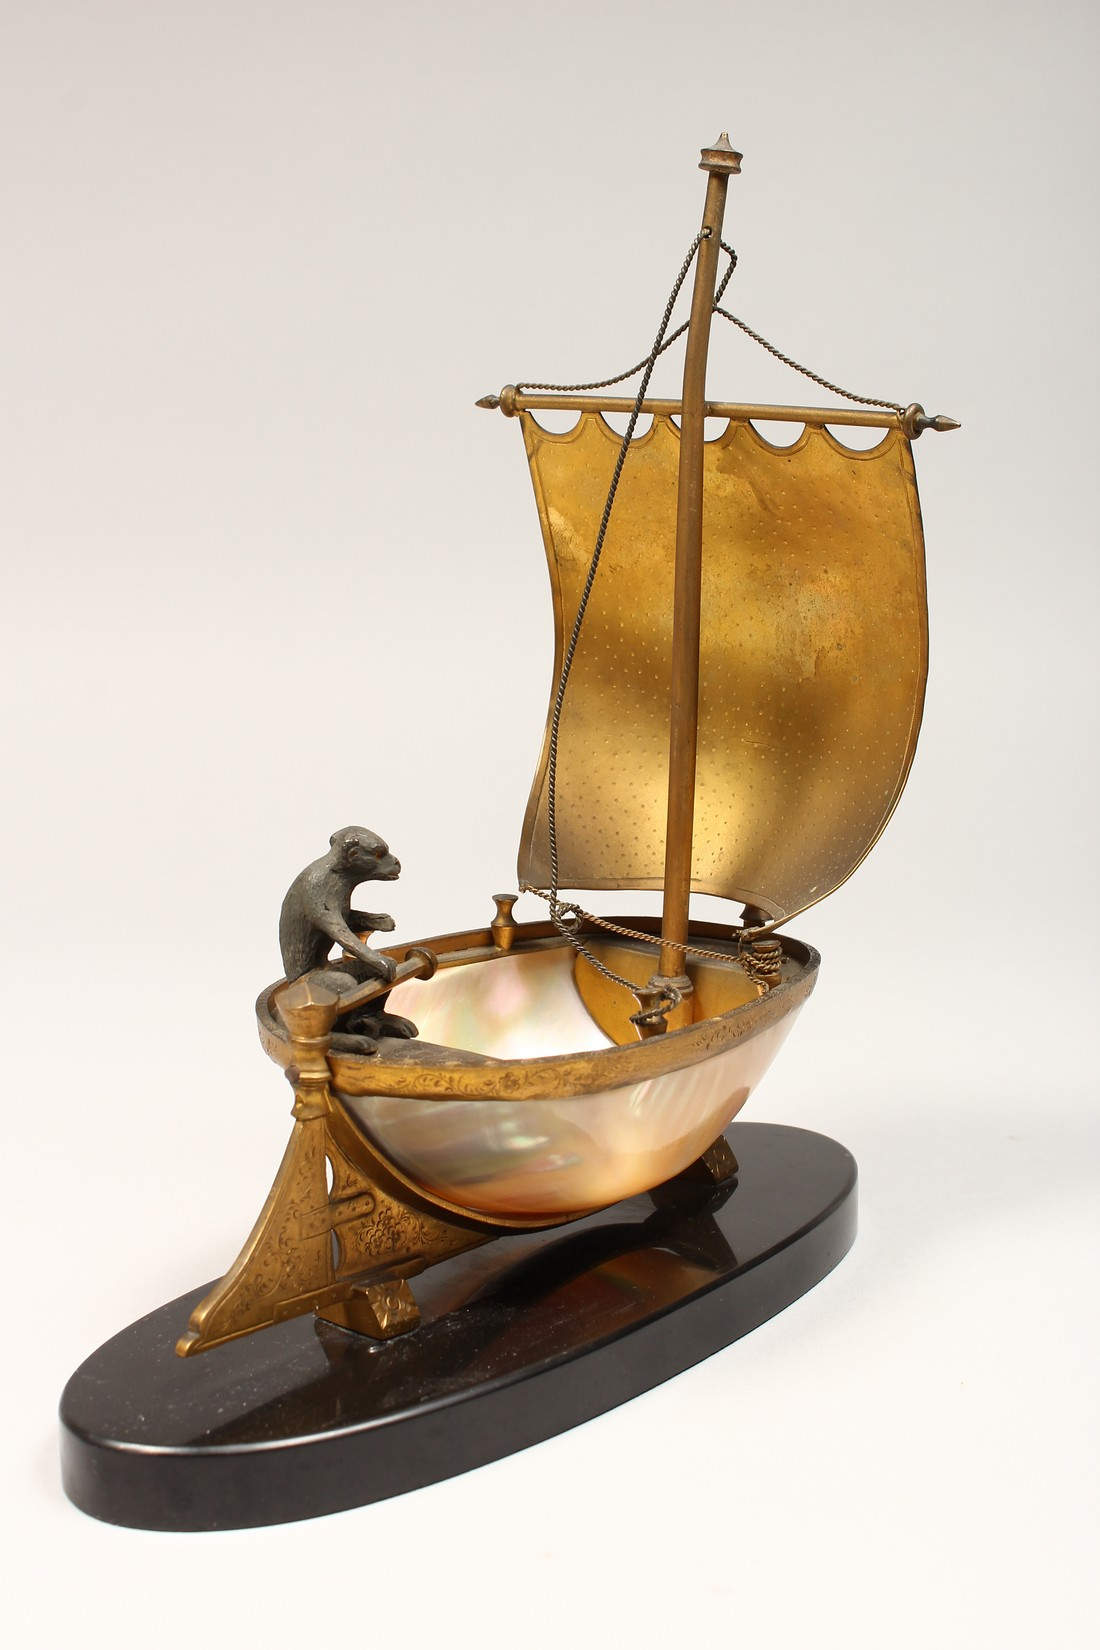 AN UNUSUAL LATE 19TH CENTURY FRENCH ORMOLU MOUNTED SHELL, mounted as a small sailing dinghy, a - Image 3 of 6